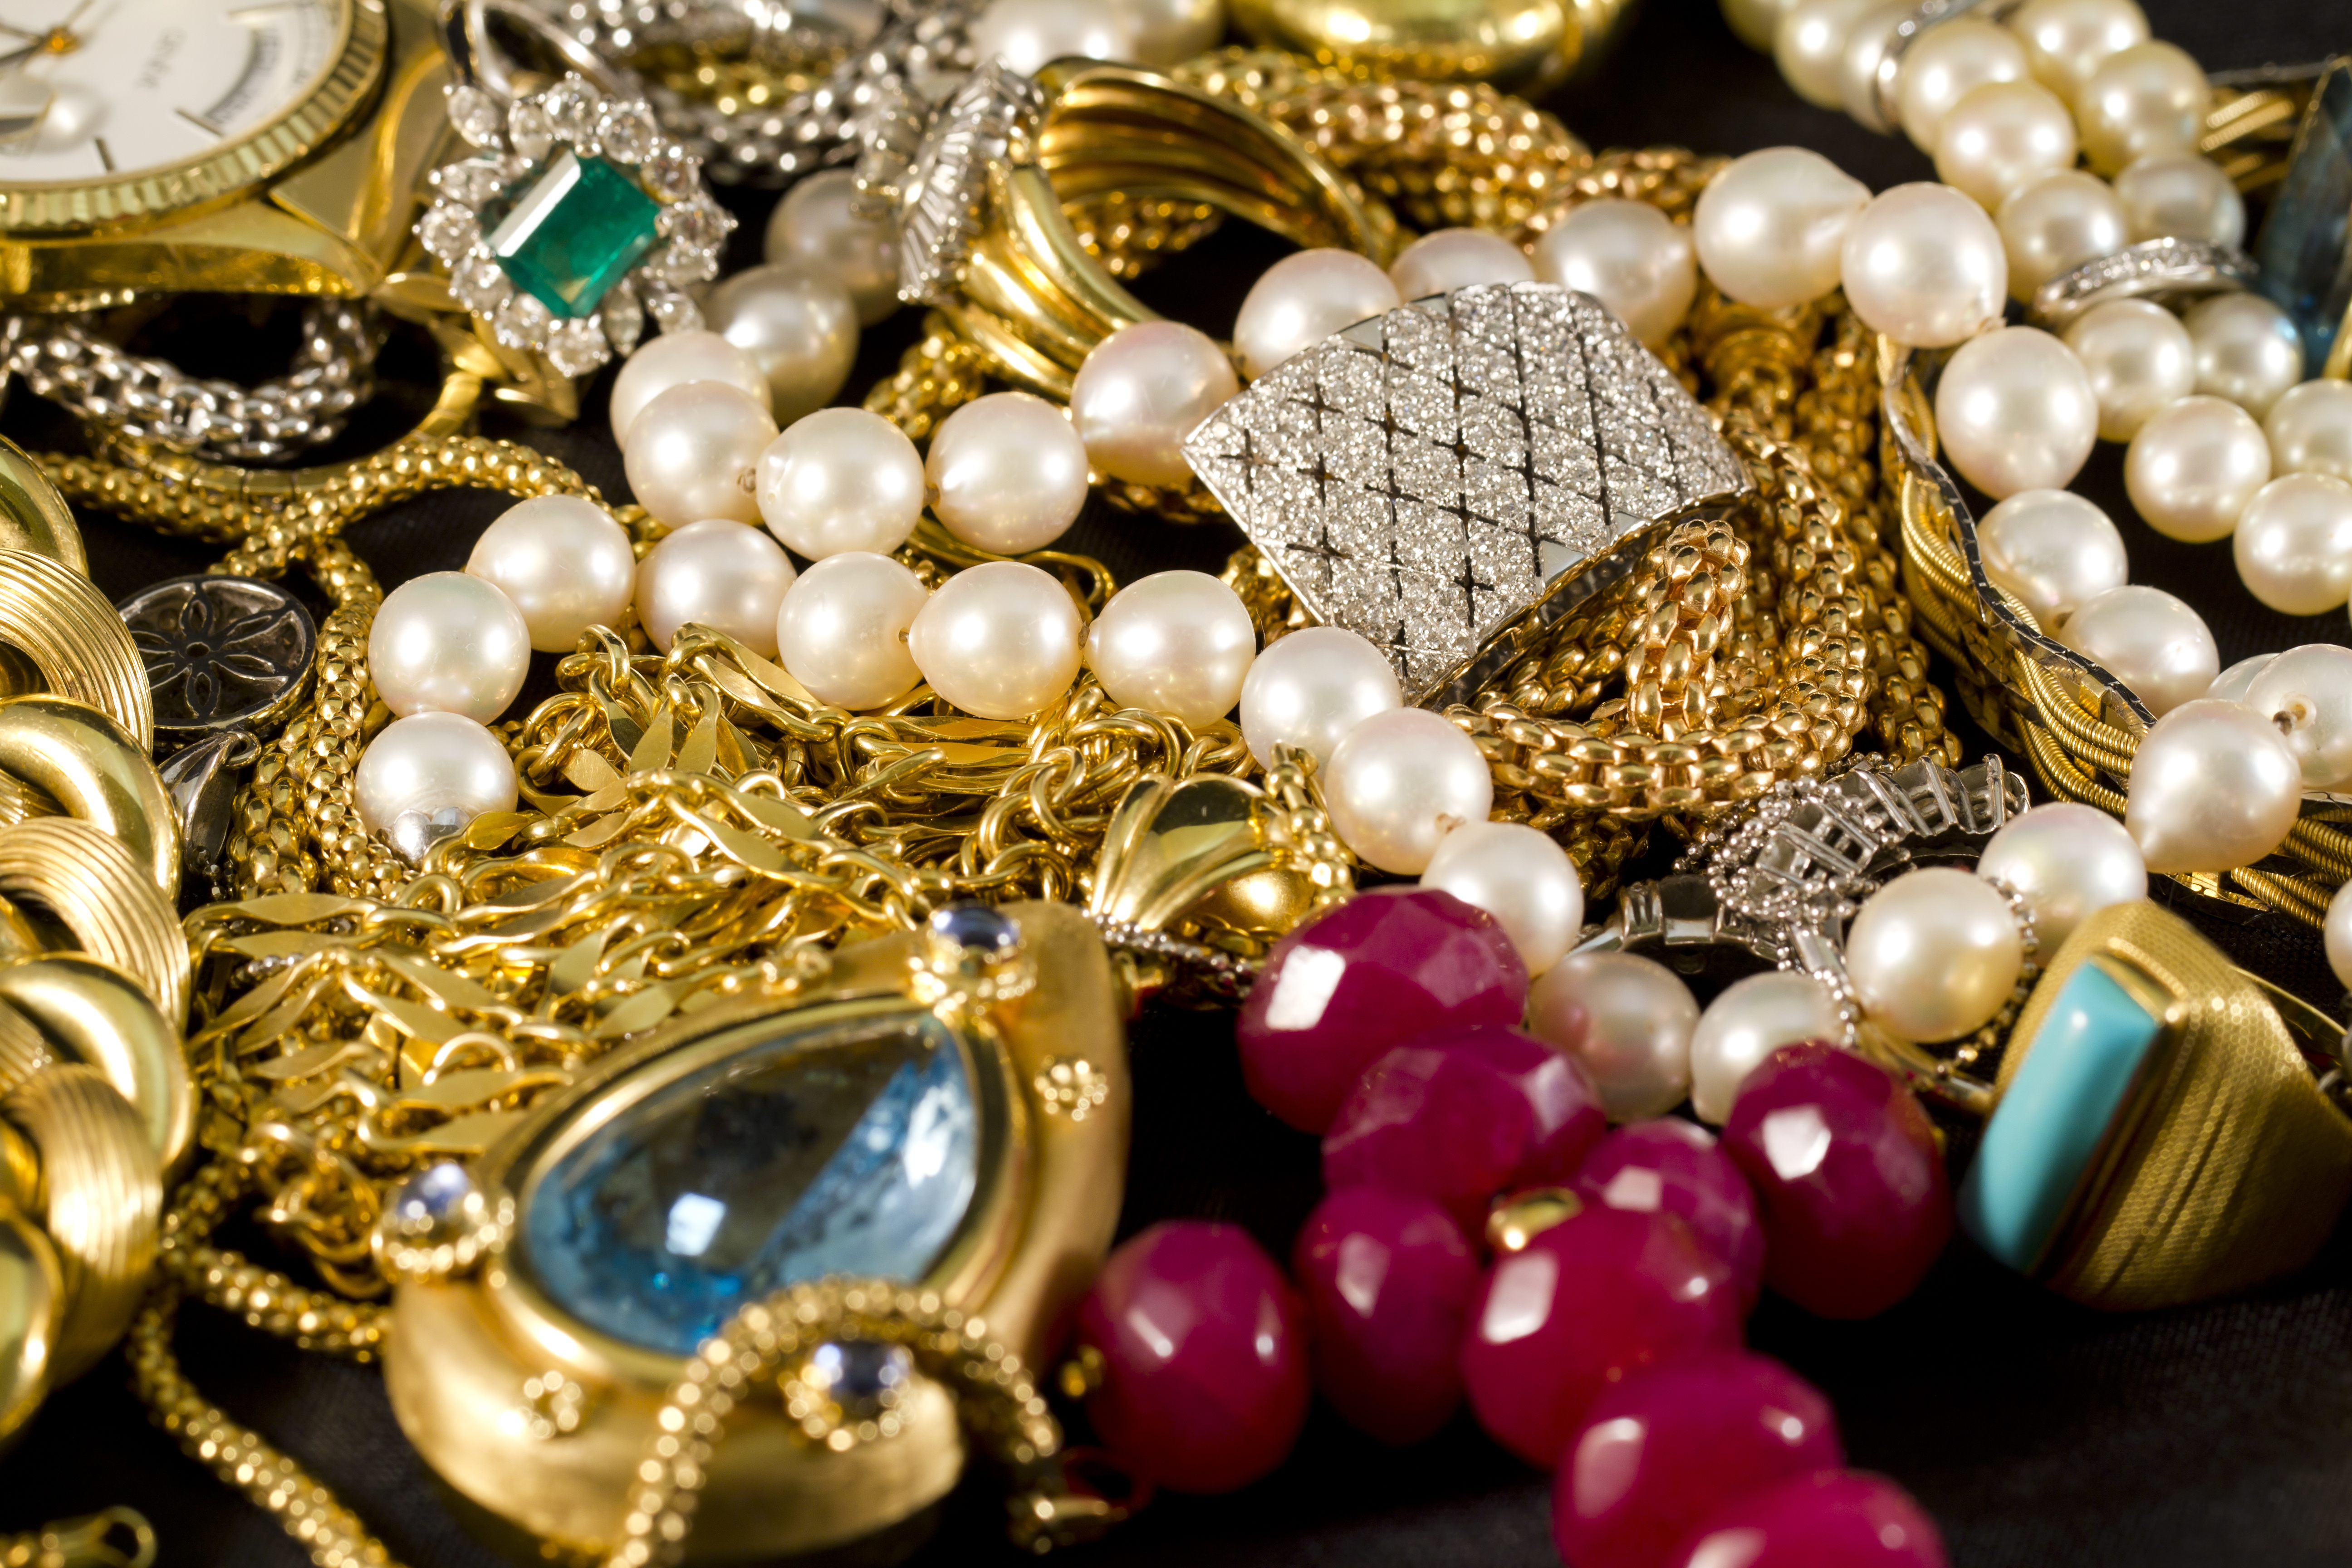 Where to get jewelry valued style guru fashion glitz for How do you get jewelry appraised